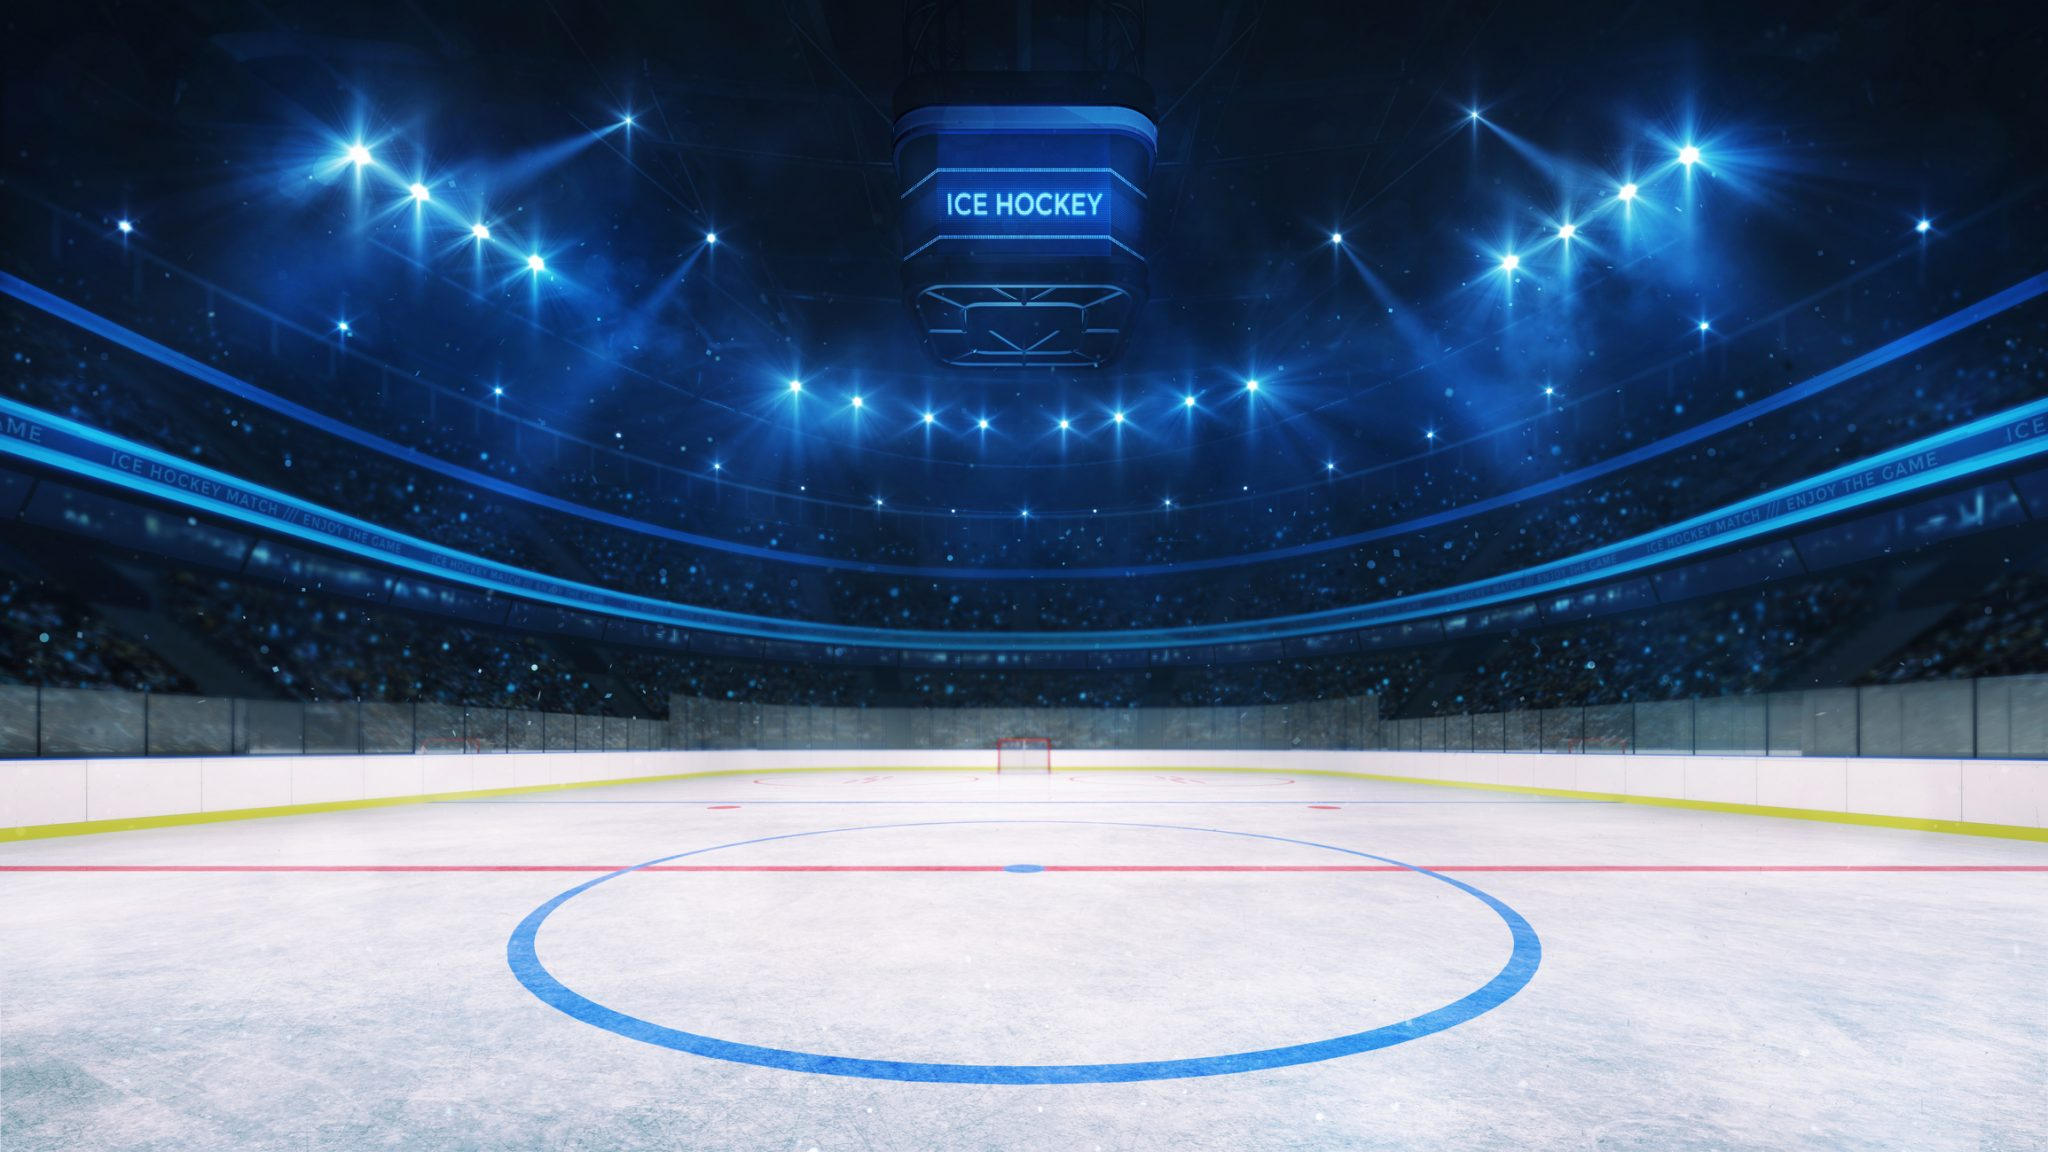 Ice Hockey Rink And Illuminated Indoor Arena With Fans, Middle Circle View